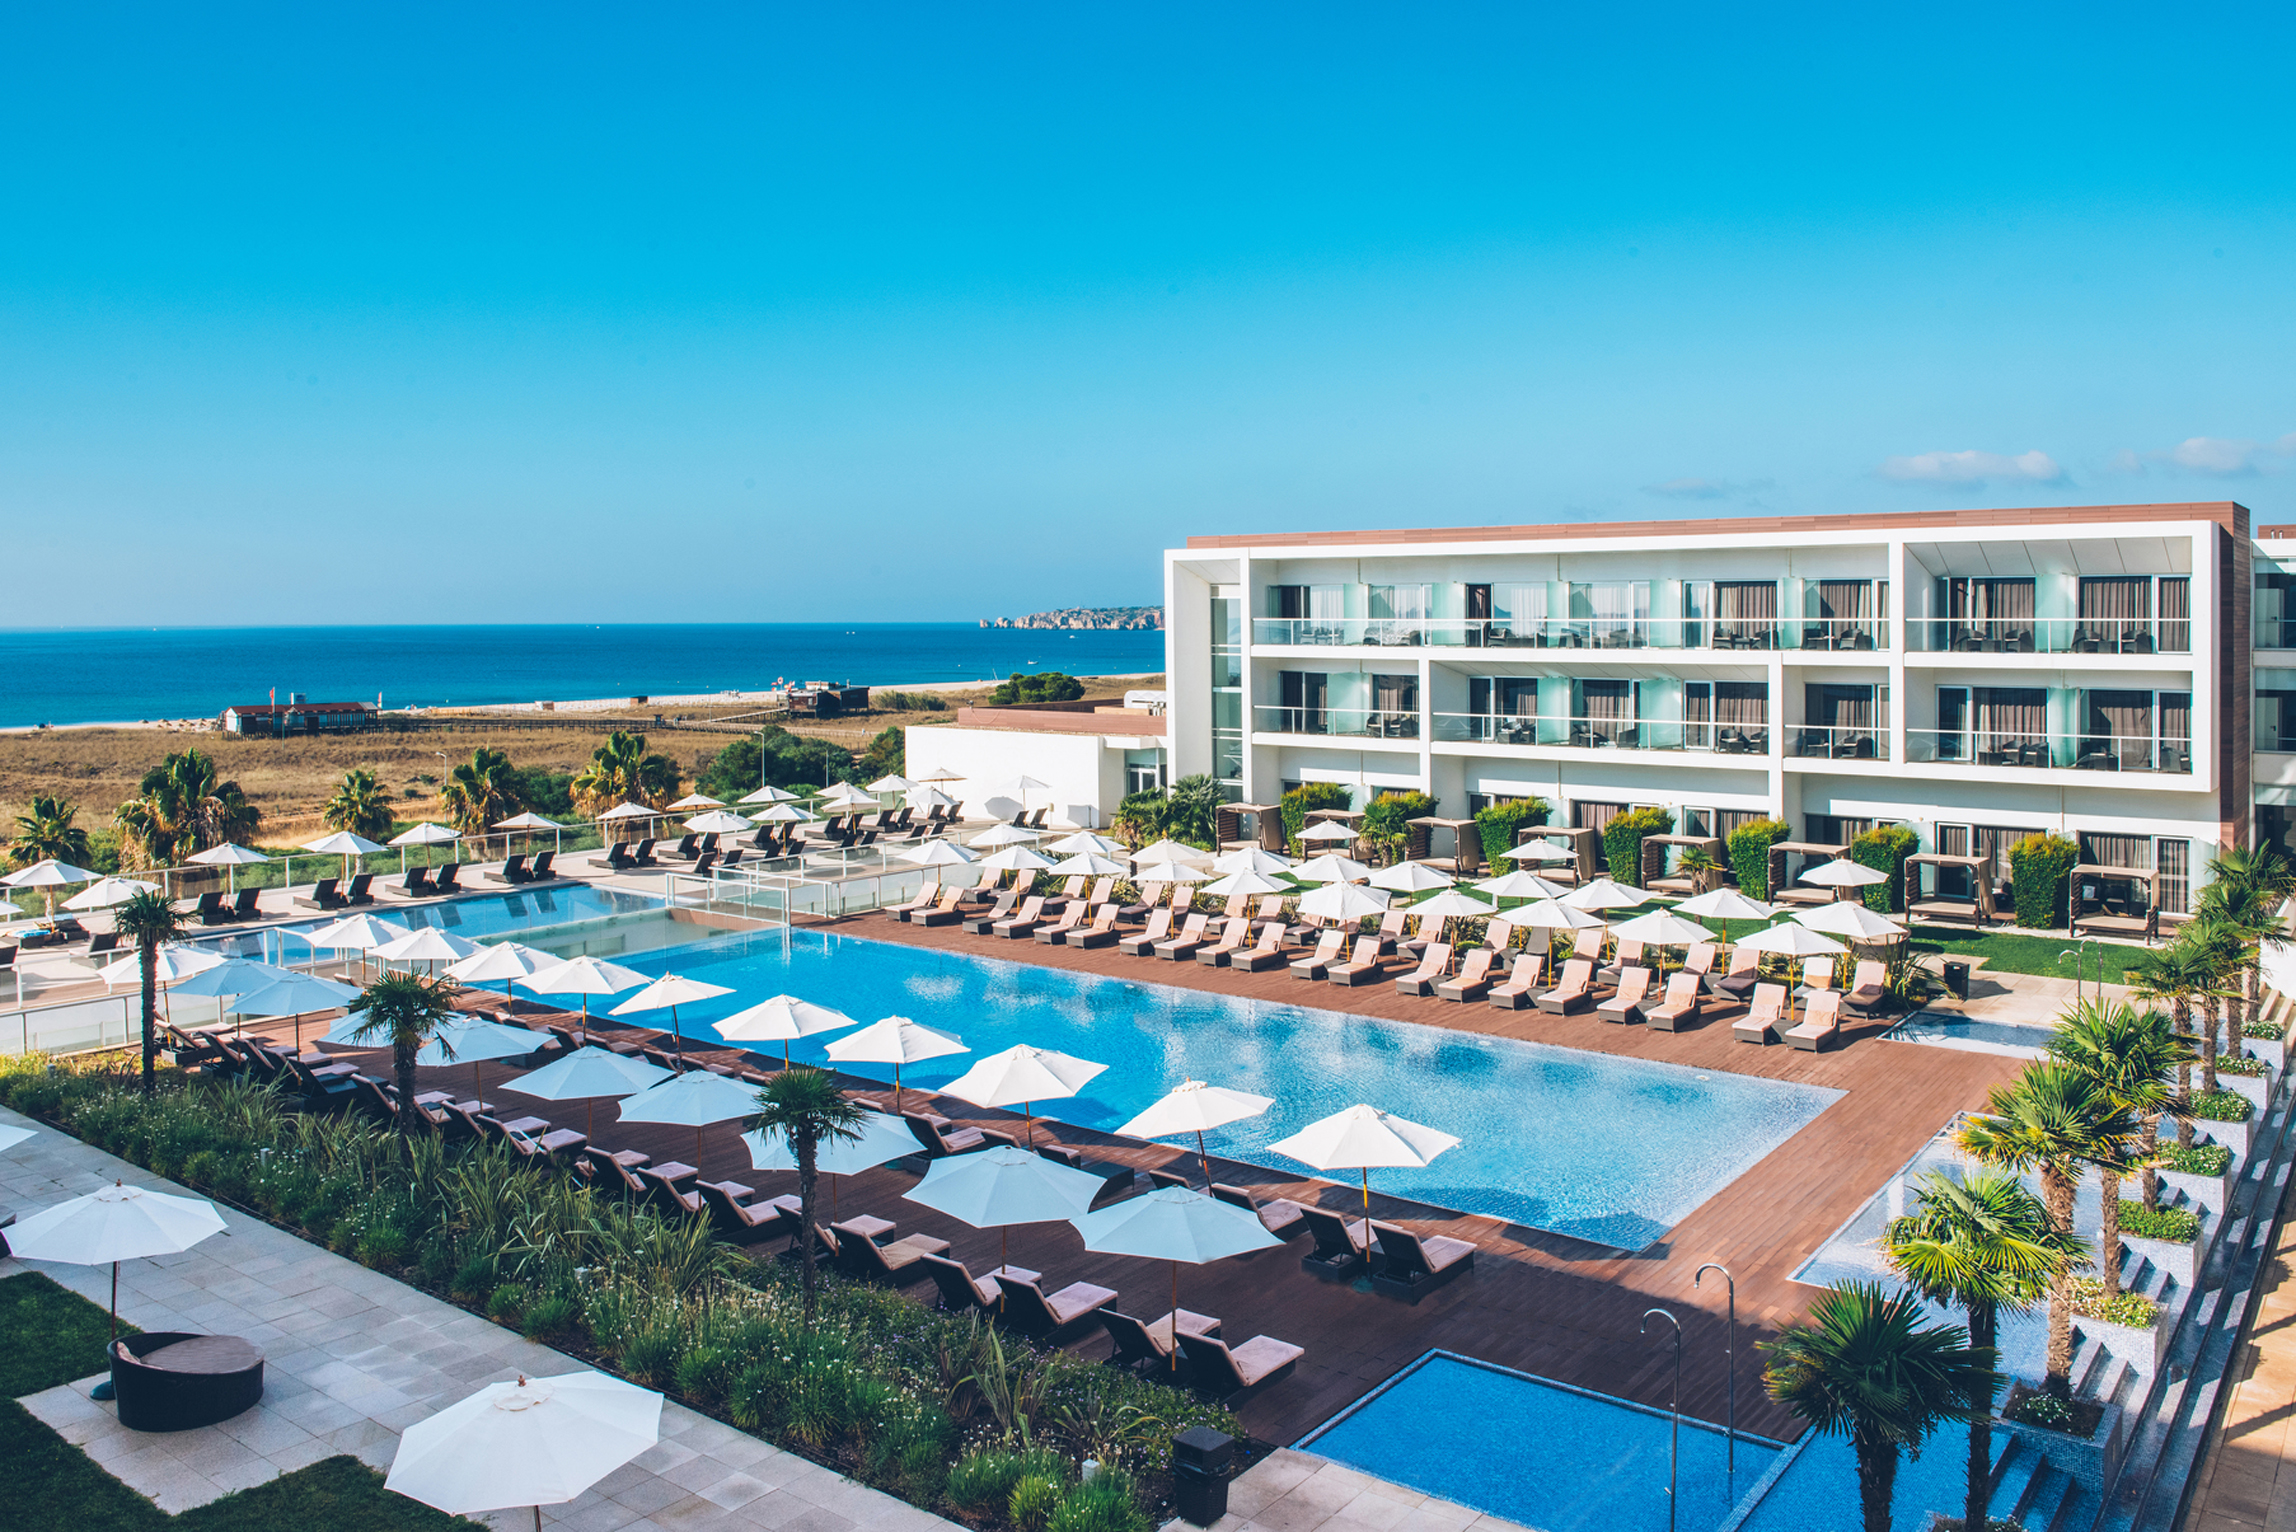 Iberostar re-opens Portugal hotels following UK all-clear